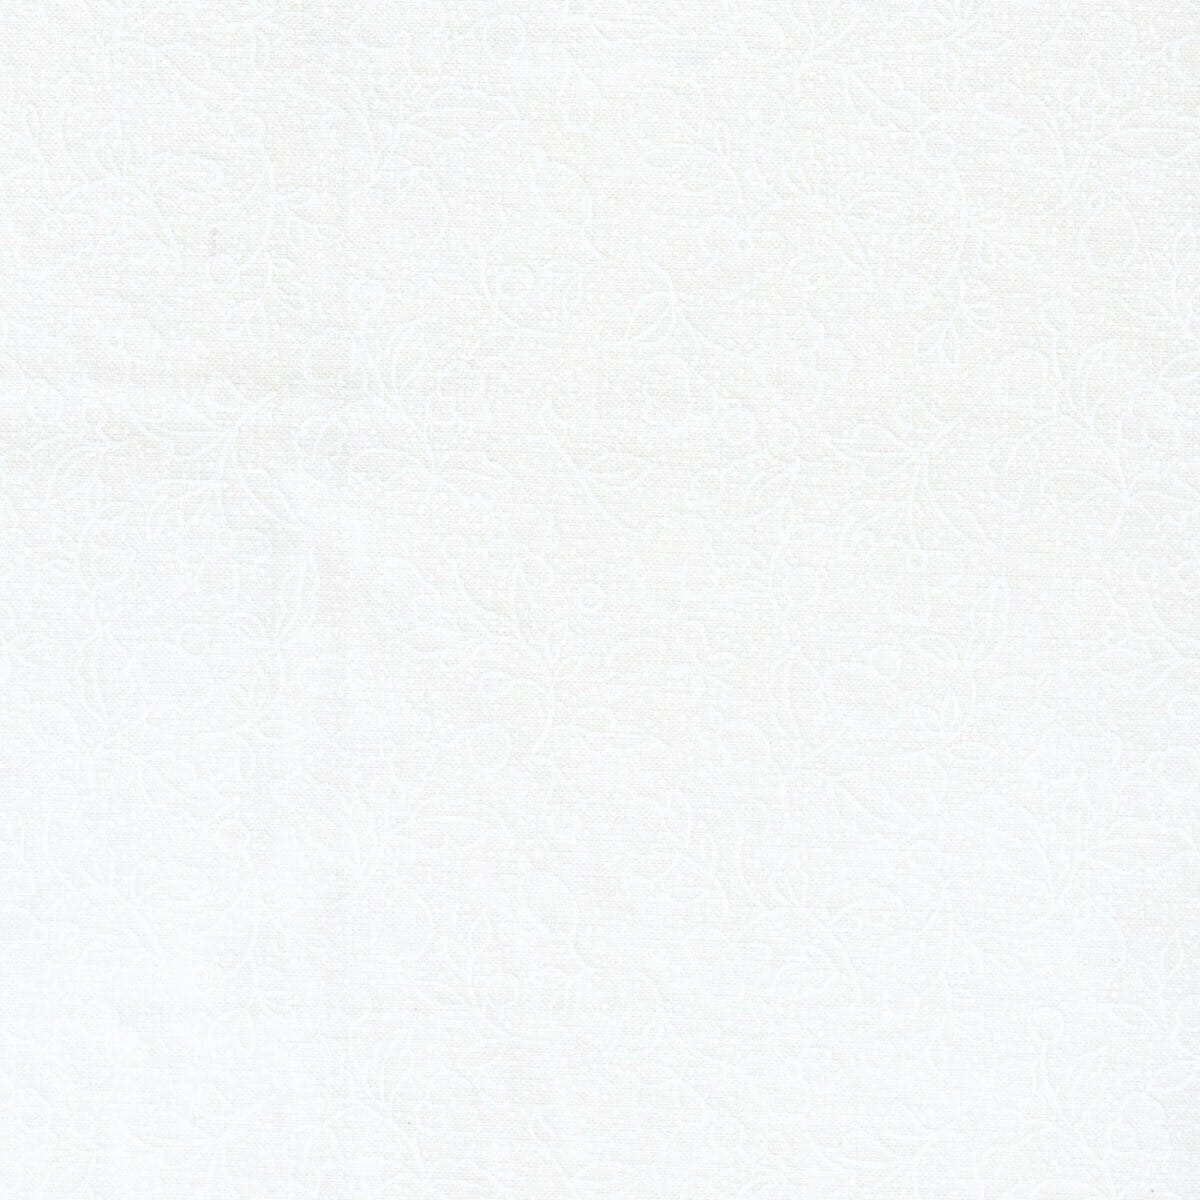 Quilt Backing Fabric 108 Inch Wide Tone on Tone White On Cream Cotton Fabric